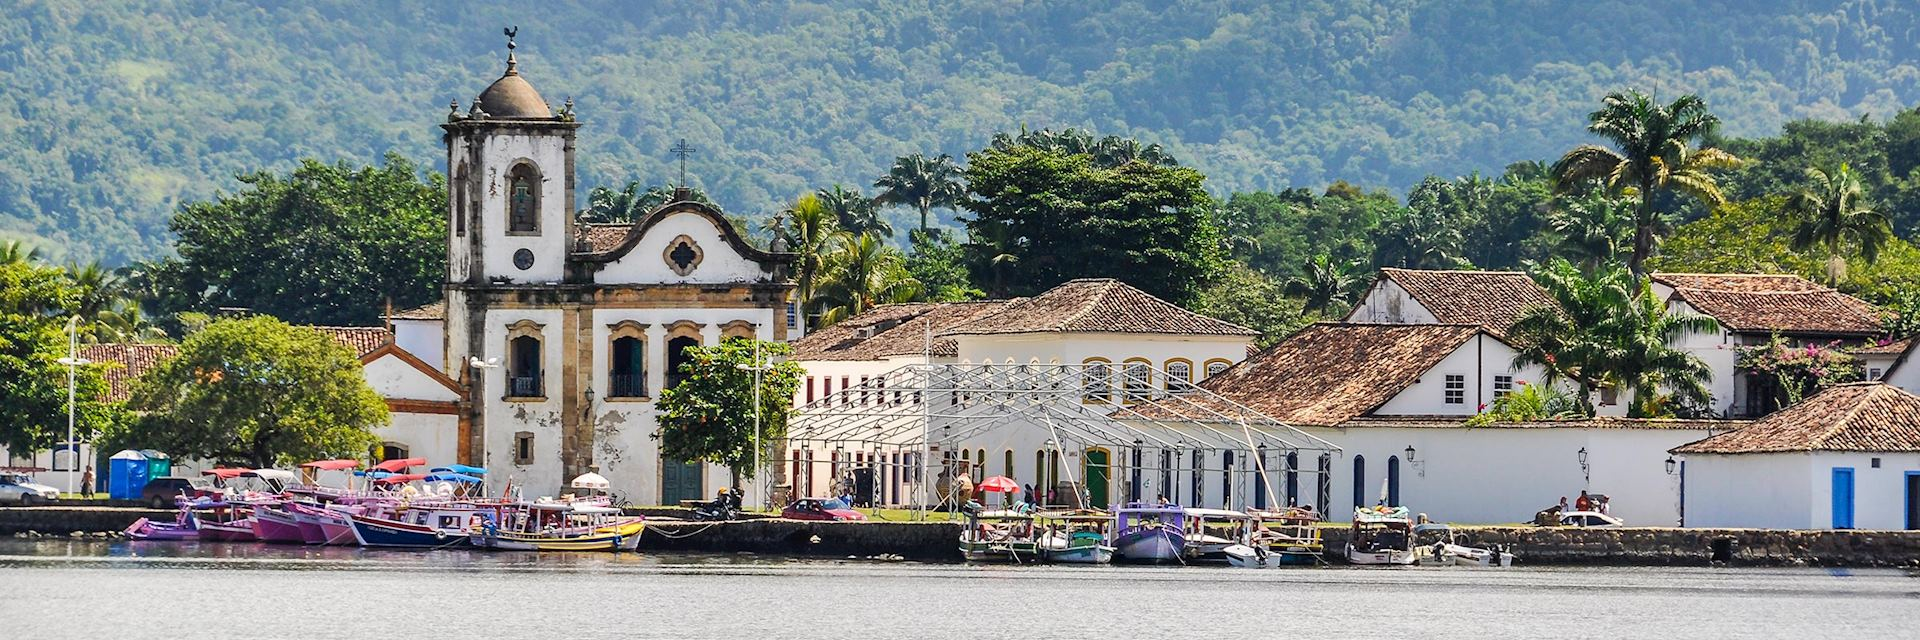 The town of Paraty along the Green Coast